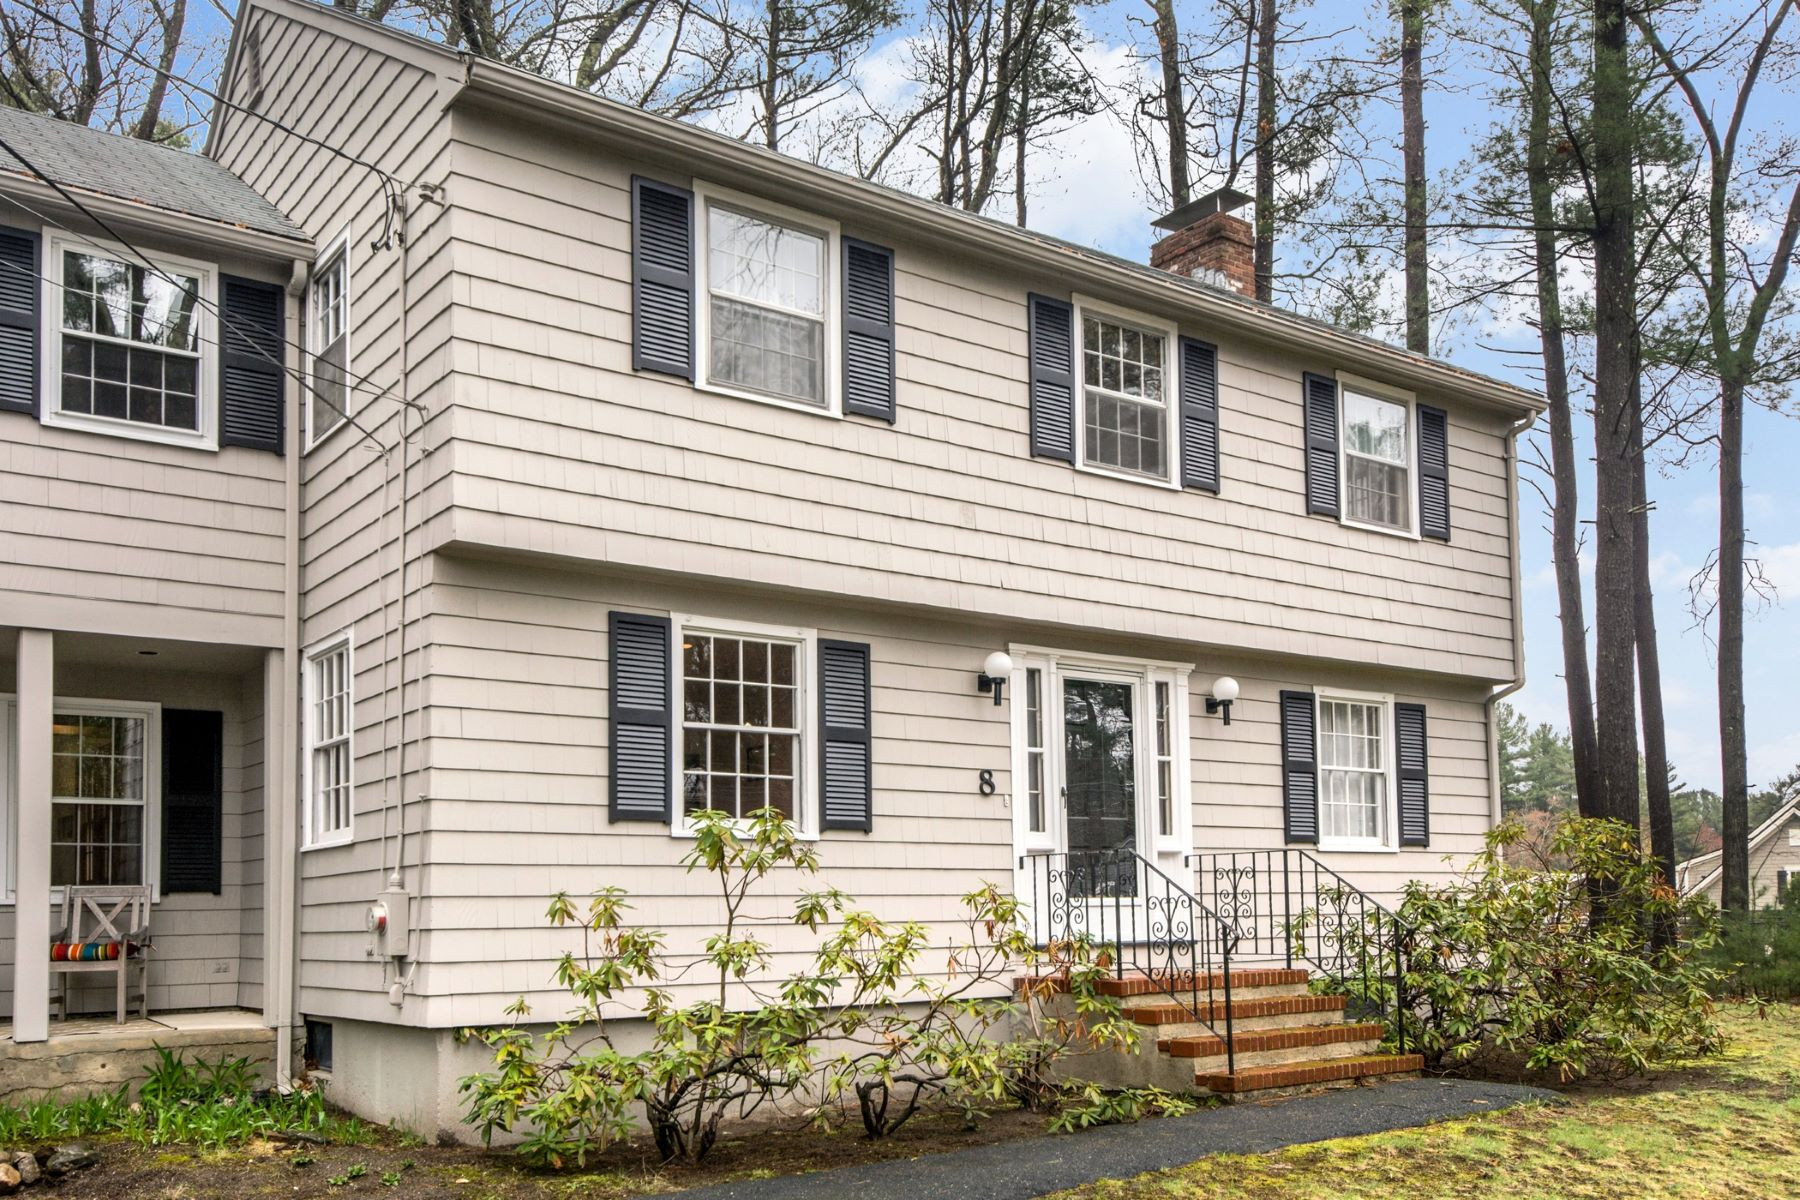 Single Family Home for Active at 8 Reed Lane, Bedford 8 Reed Ln Bedford, Massachusetts 01730 United States